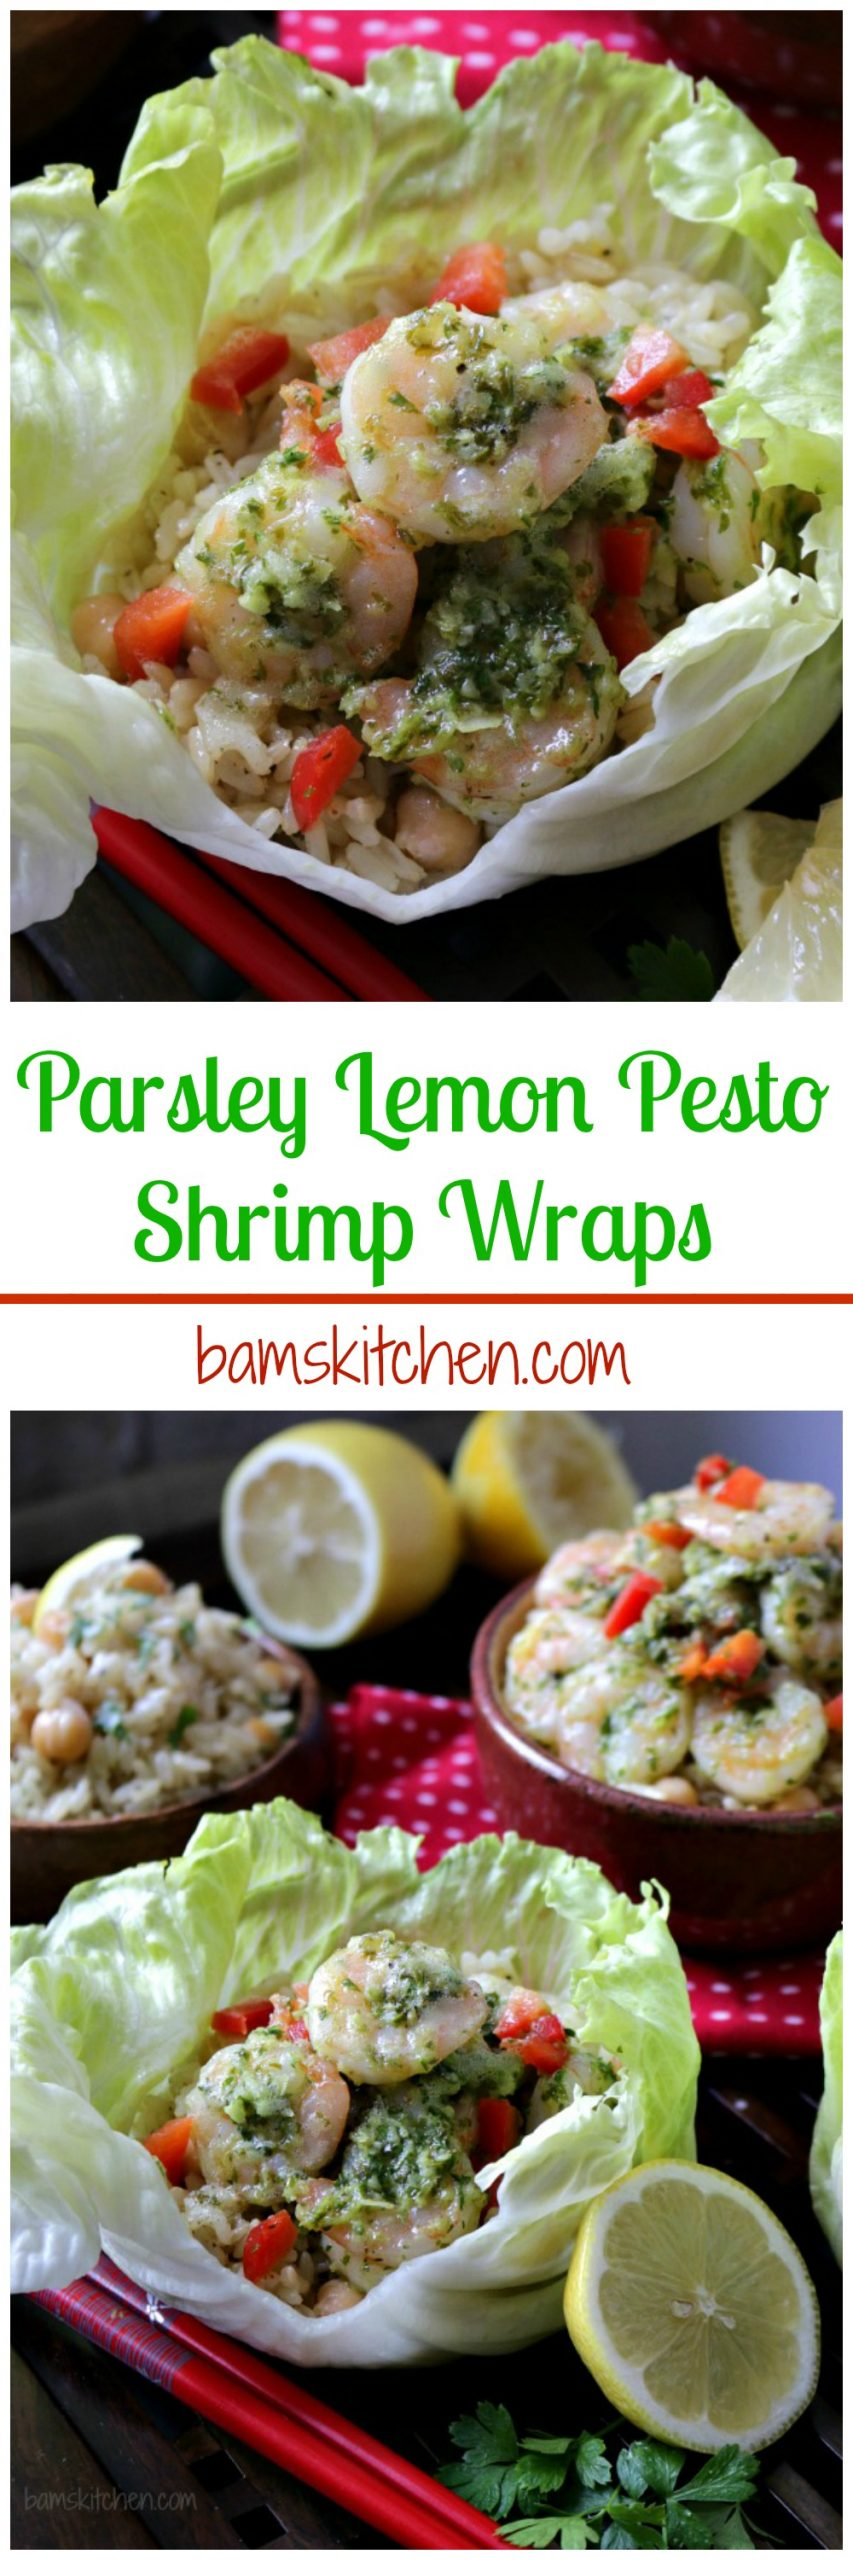 Parsley Lemon Pesto Shrimp Wraps / http://bamskitchen.com